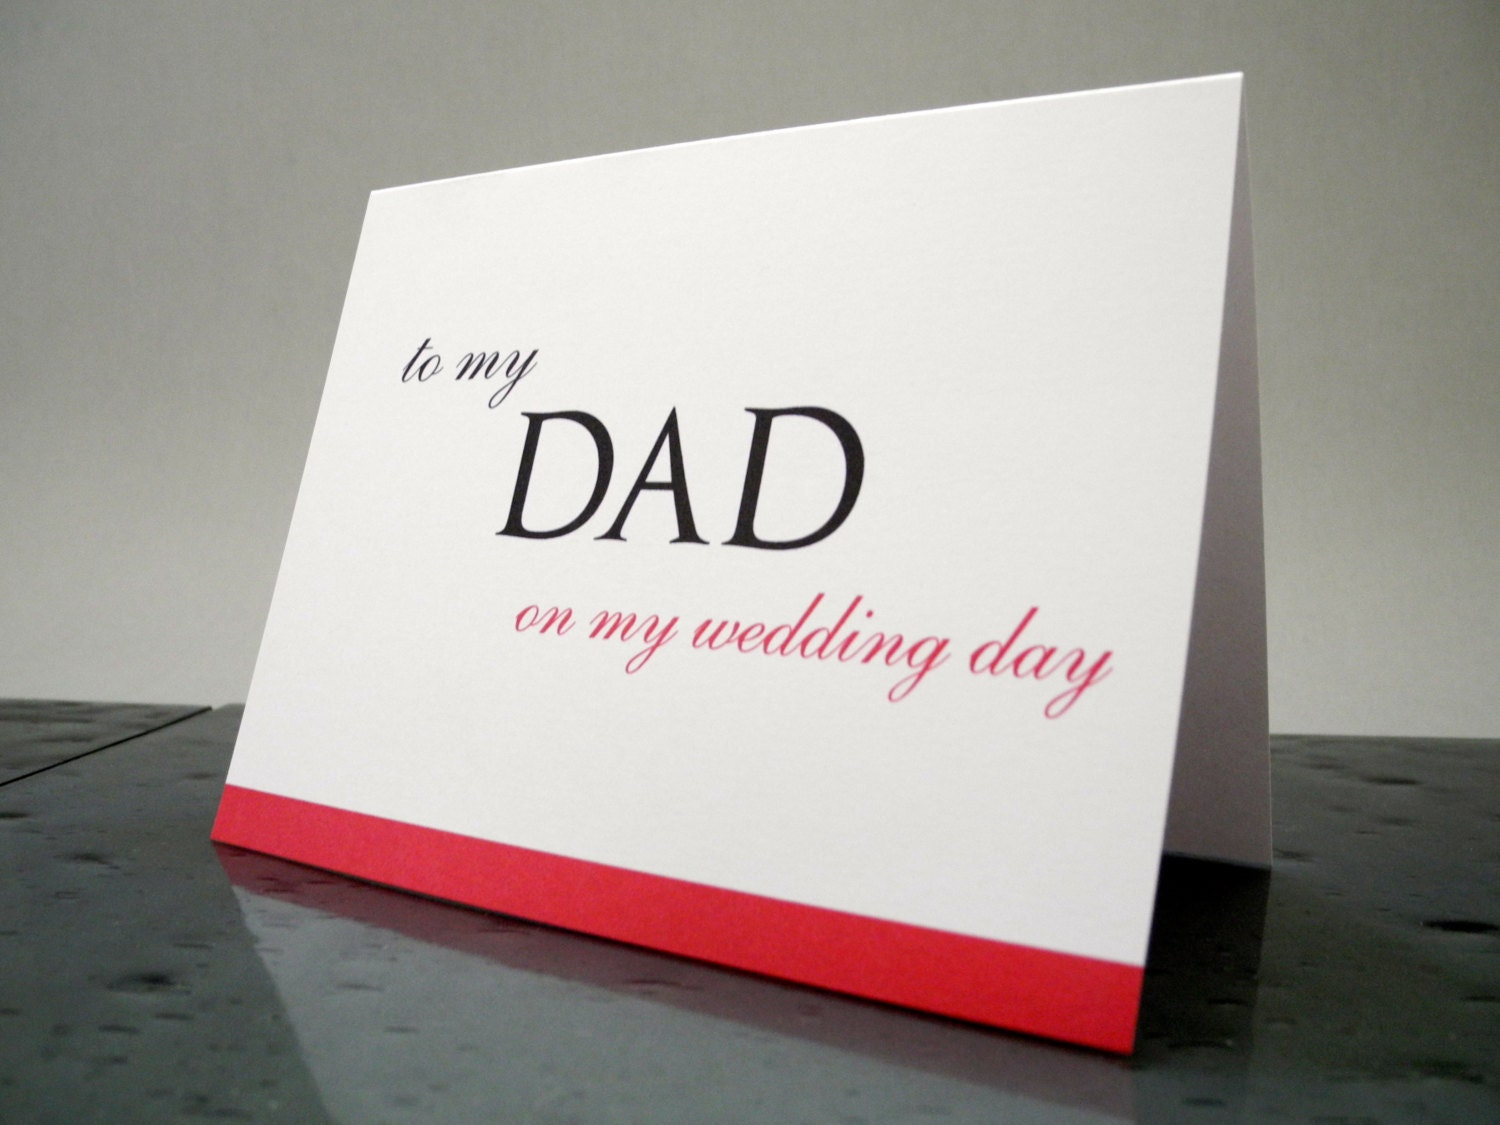 Gift For Dad On Wedding Day: To My Dad On My Wedding Day Card Father Wedding Day Gift